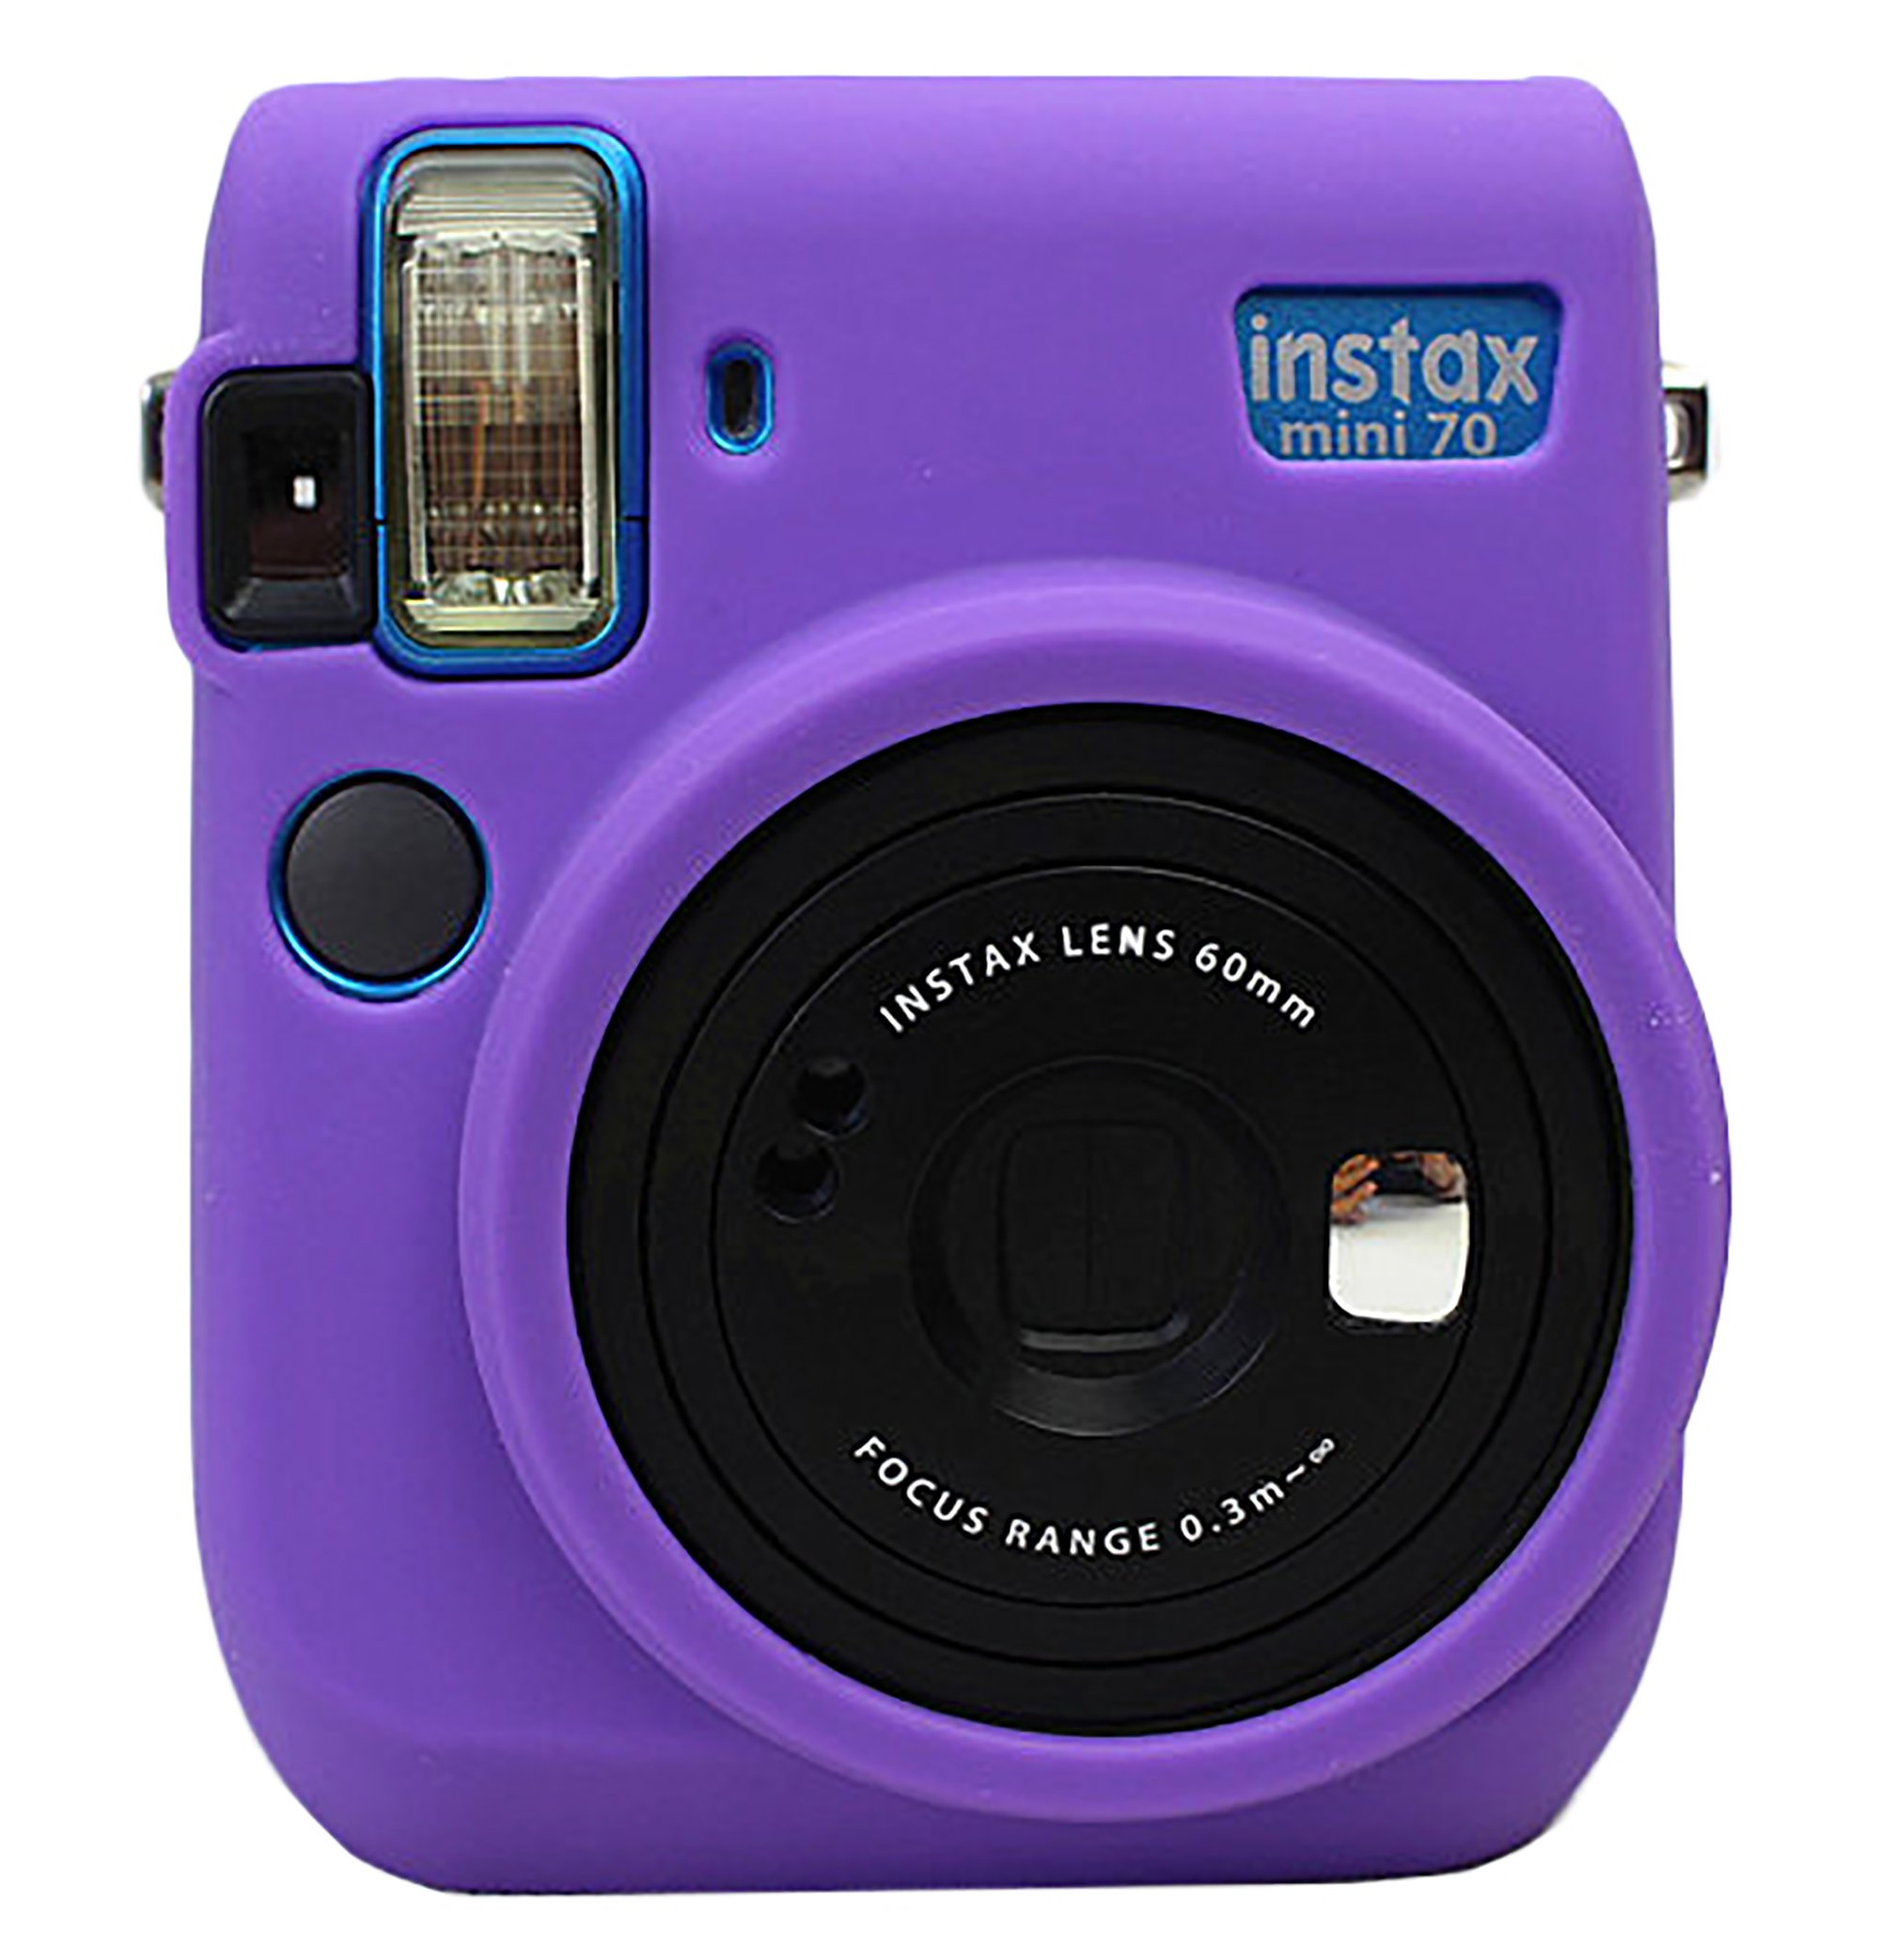 Protective Silicone Gel Rubber Soft Camera Case Cover Bag For Fujifilm Fuji Instax Mini 70 Camera Purple